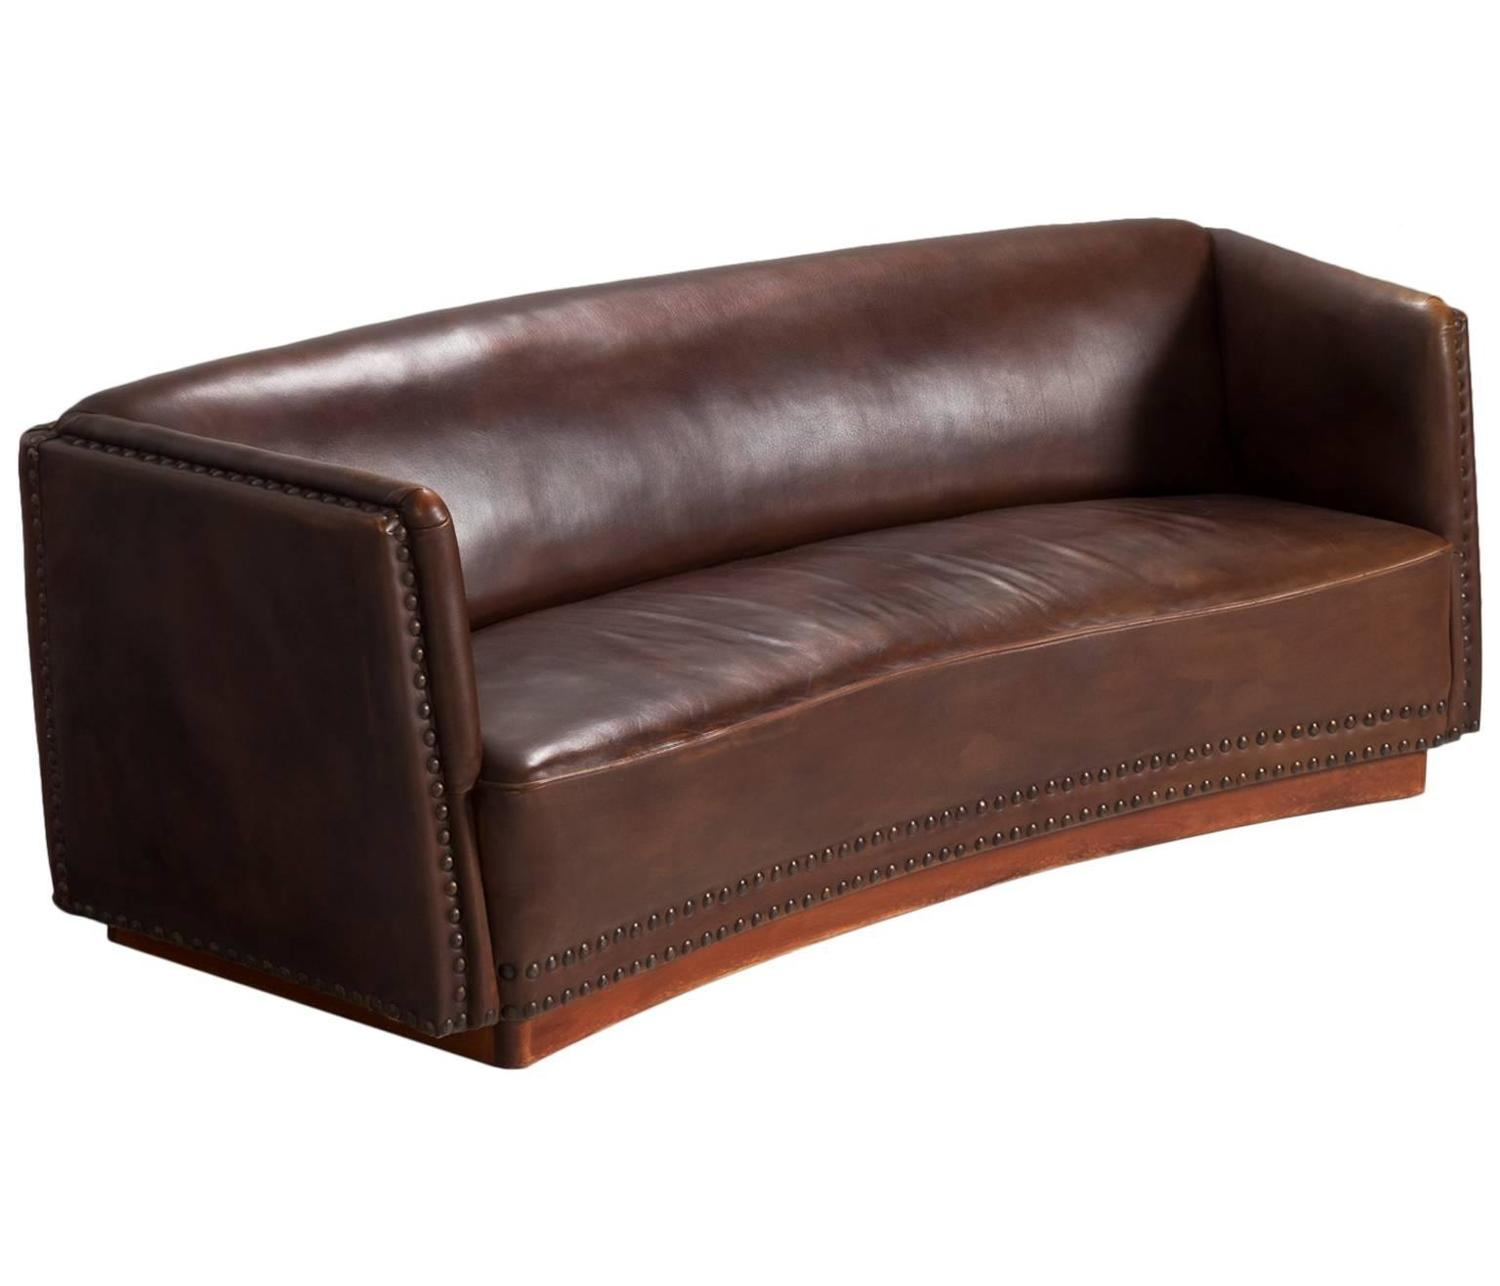 Fritz Hansen Brown Leather Sofa 1940s For Sale at 1stdibs